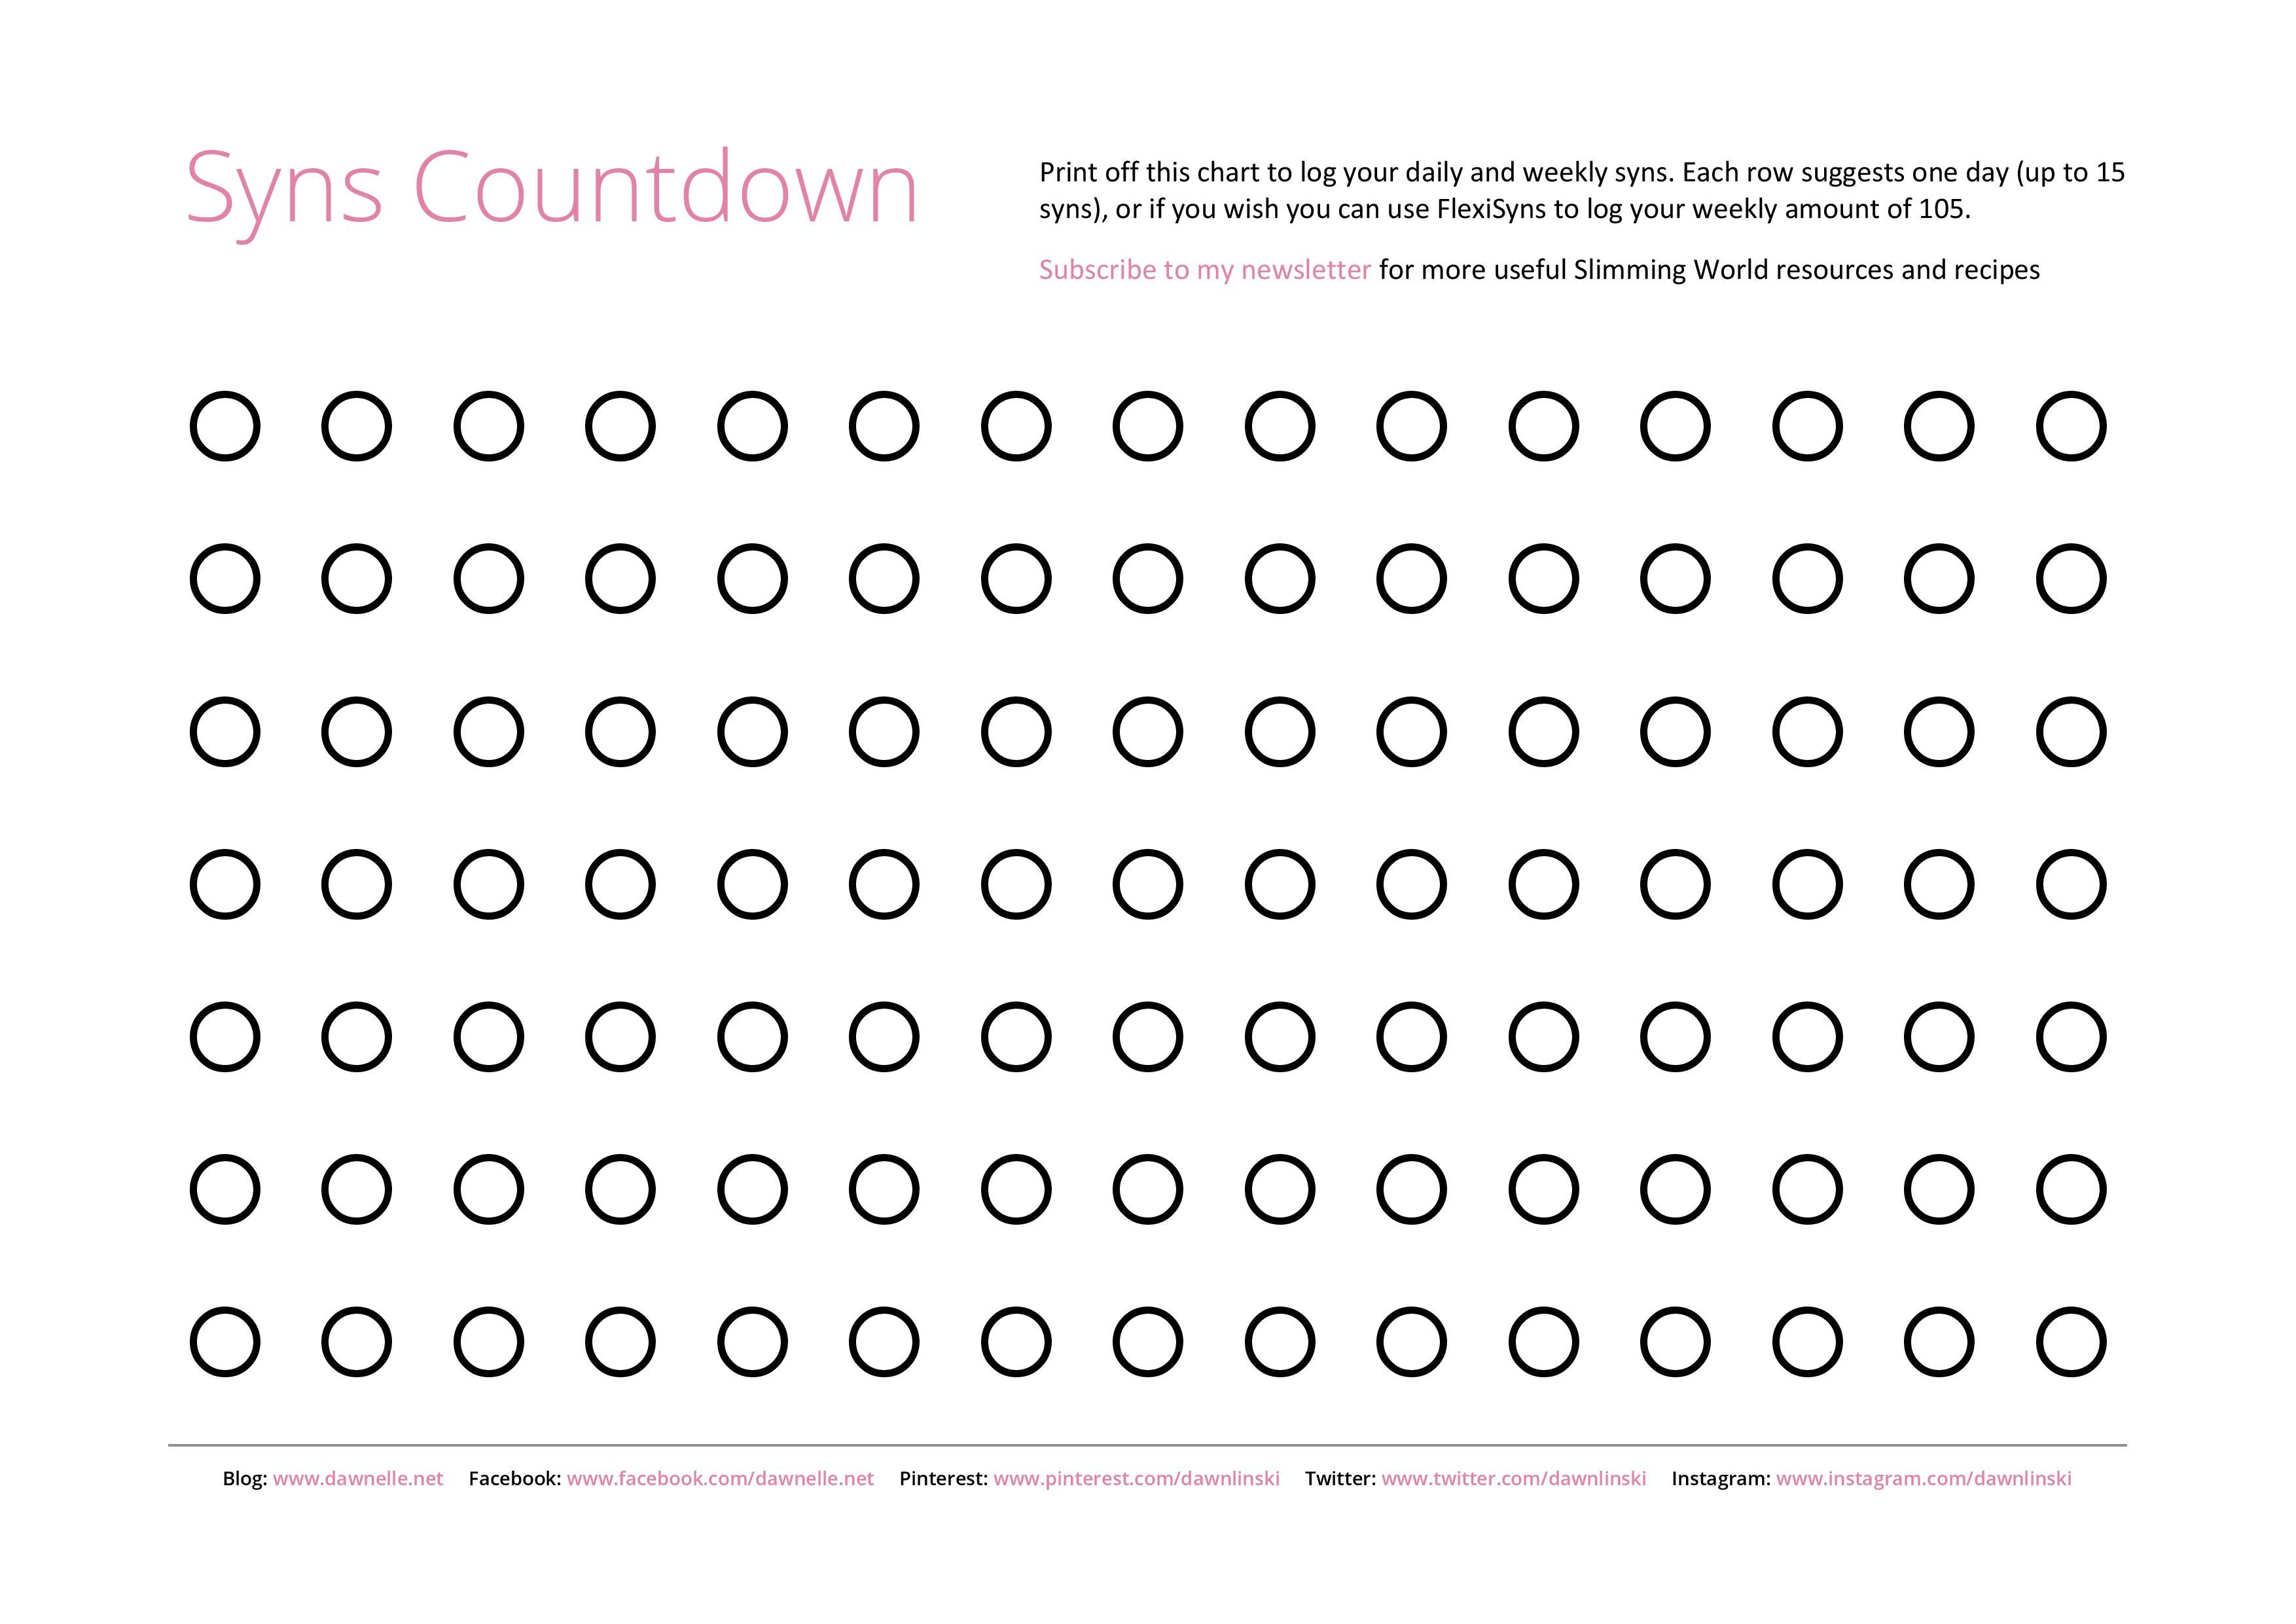 picture regarding Printable Countdown Chart called Cost-free #SlimmingWorld #Printables - Syns Countdown Chart